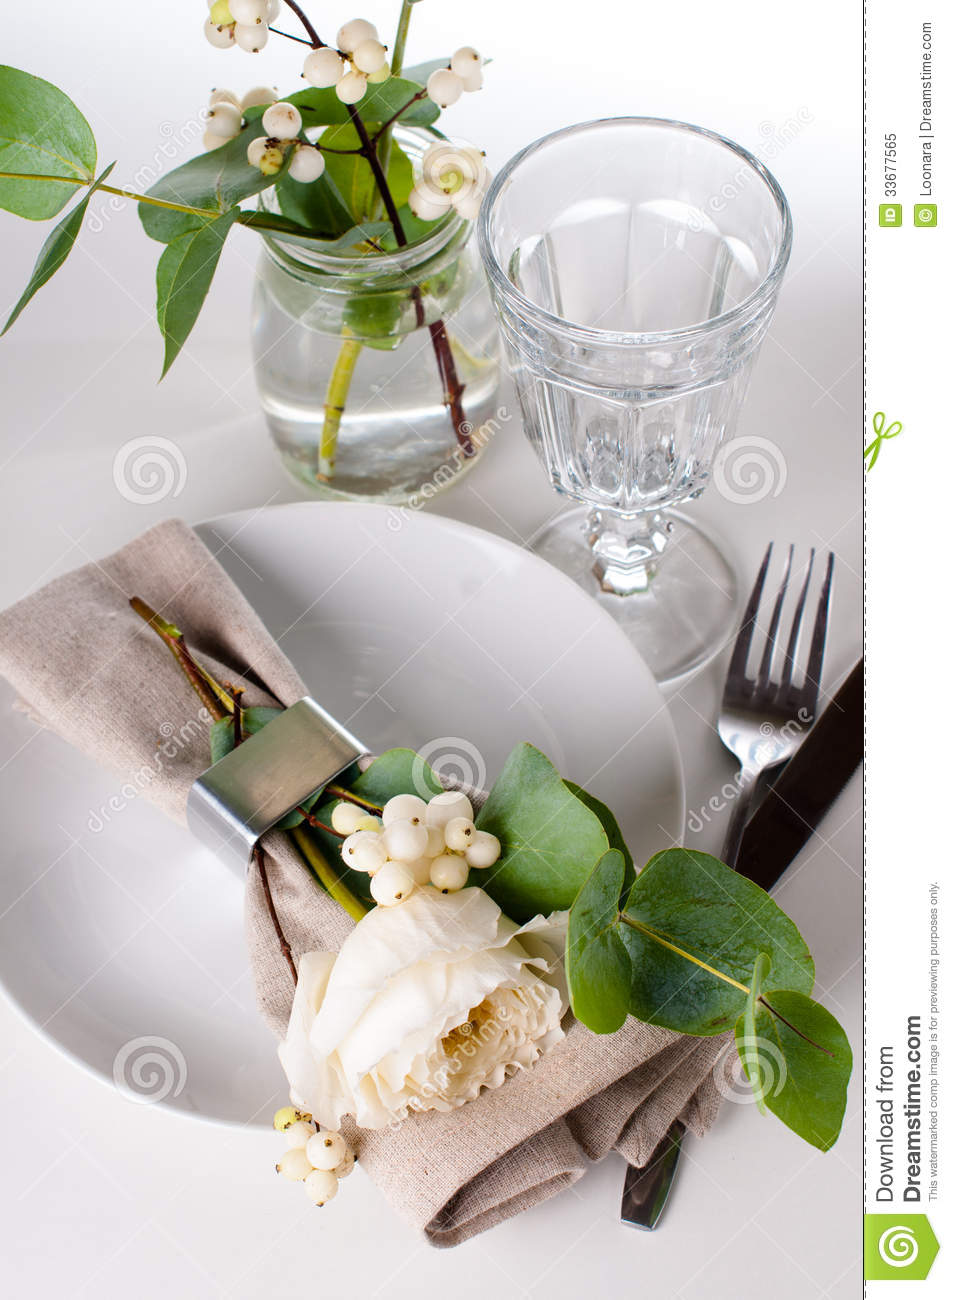 Festive Table Setting With Floral Decoration Royalty Free Stock Photo ...